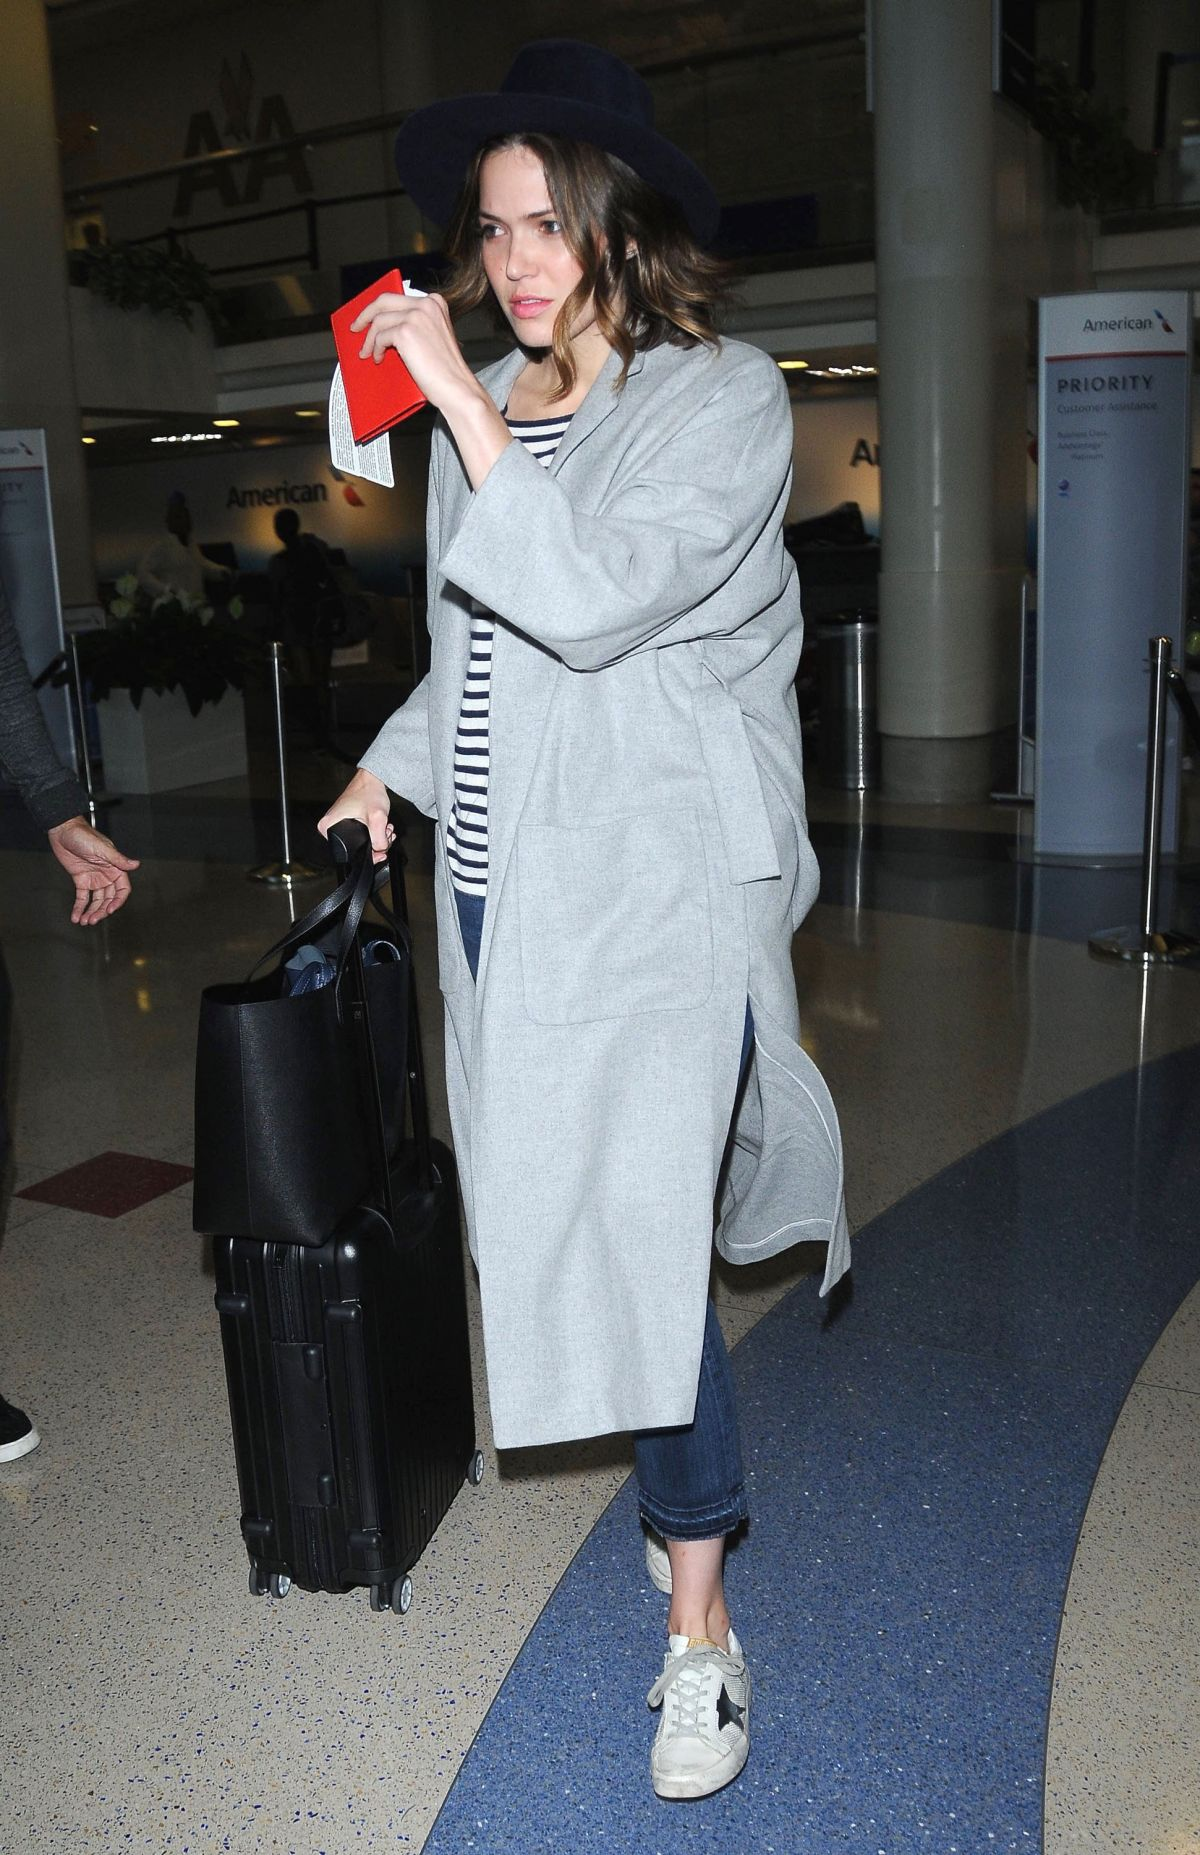 MANDY MOORE Arrives at LAX Airport in Los Angeles 06/09/2015